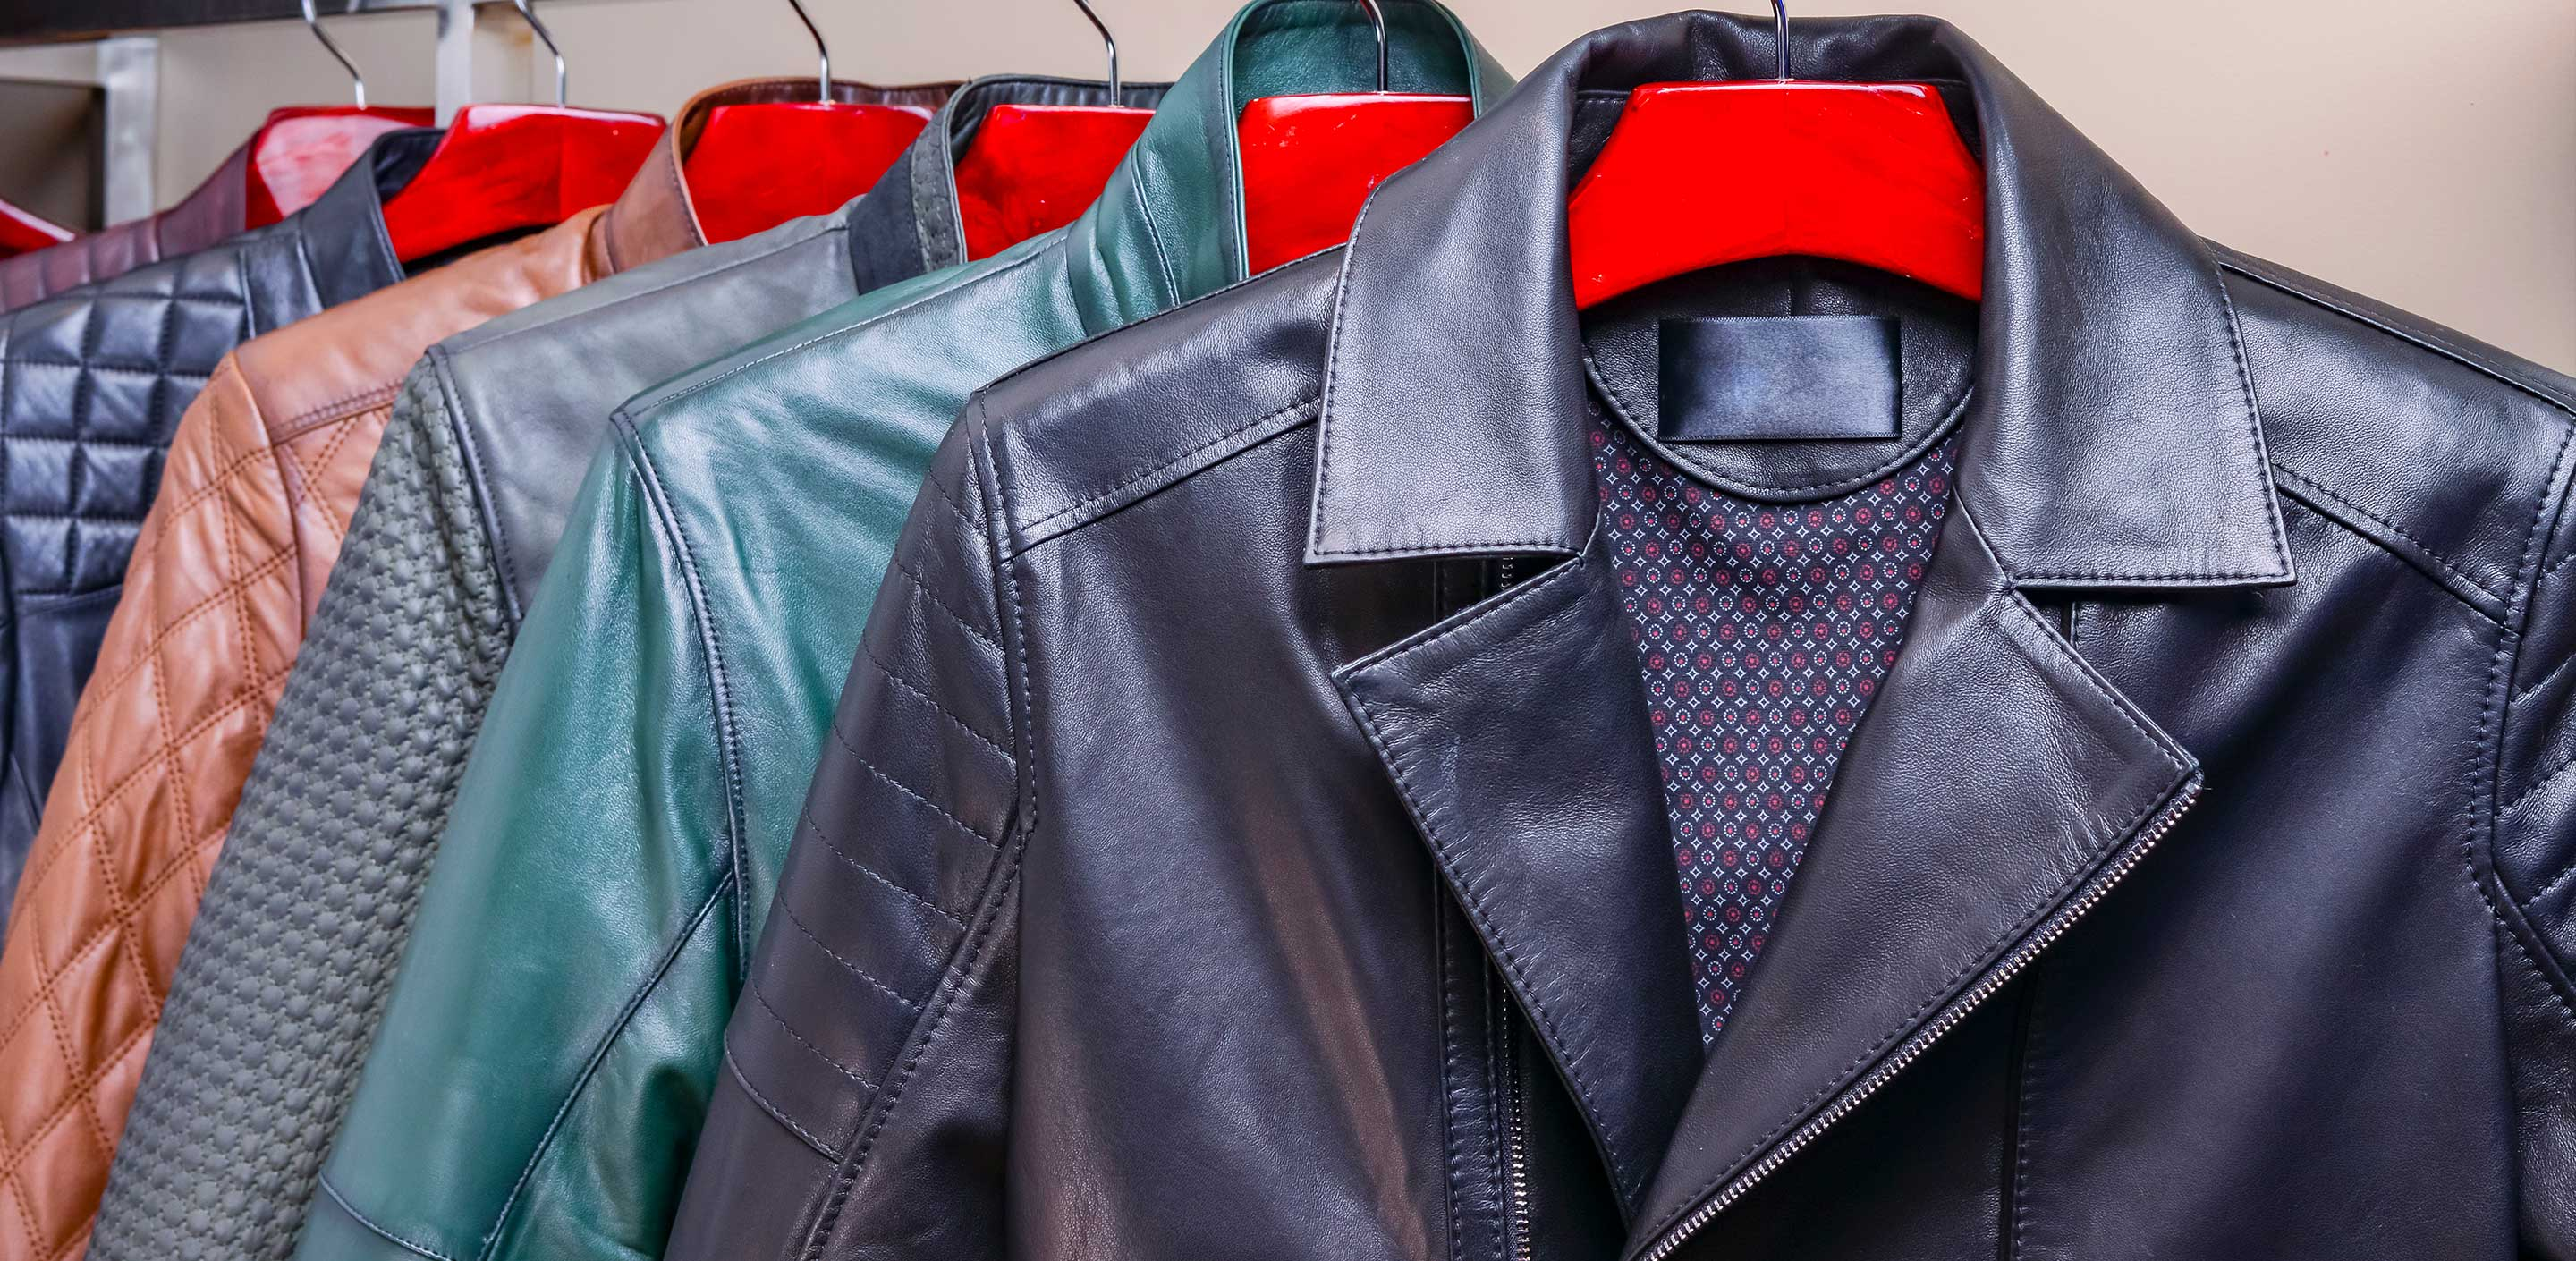 What Linings Are Used For Leather Jackets?